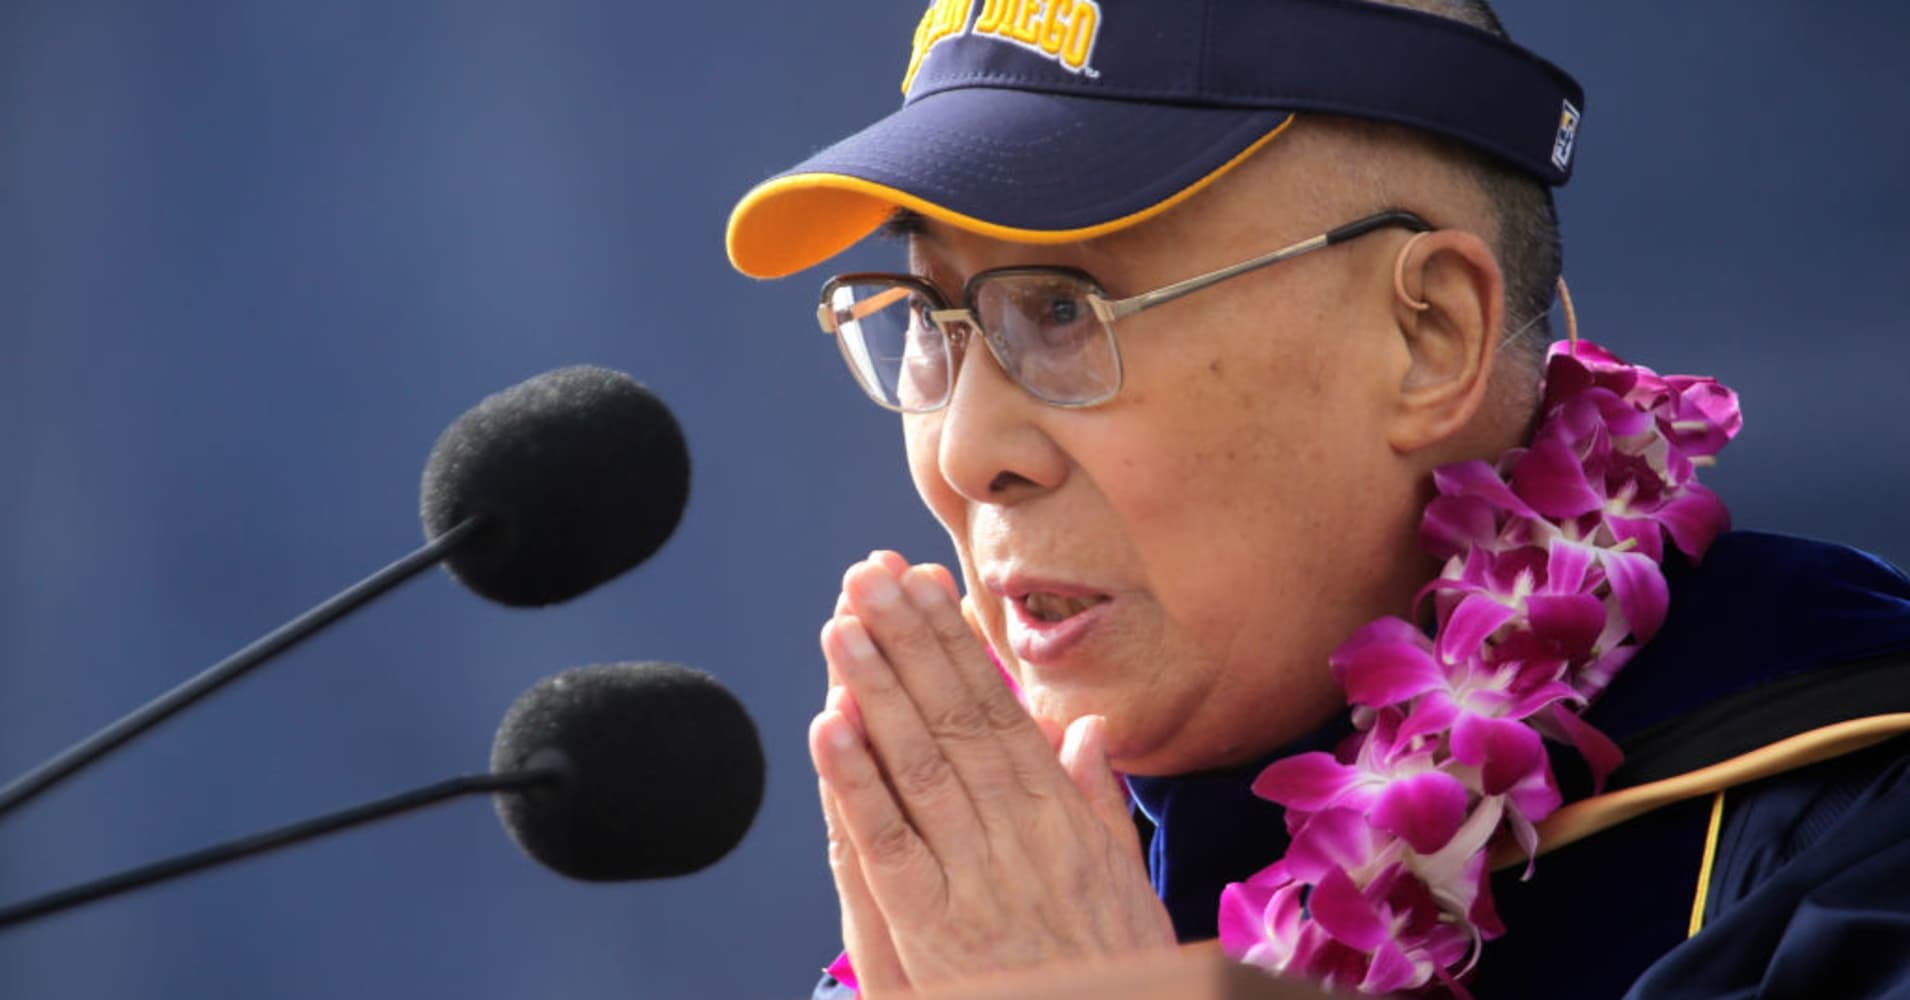 The Dalai Lama delivers the commencement address to the University of California-San Diego